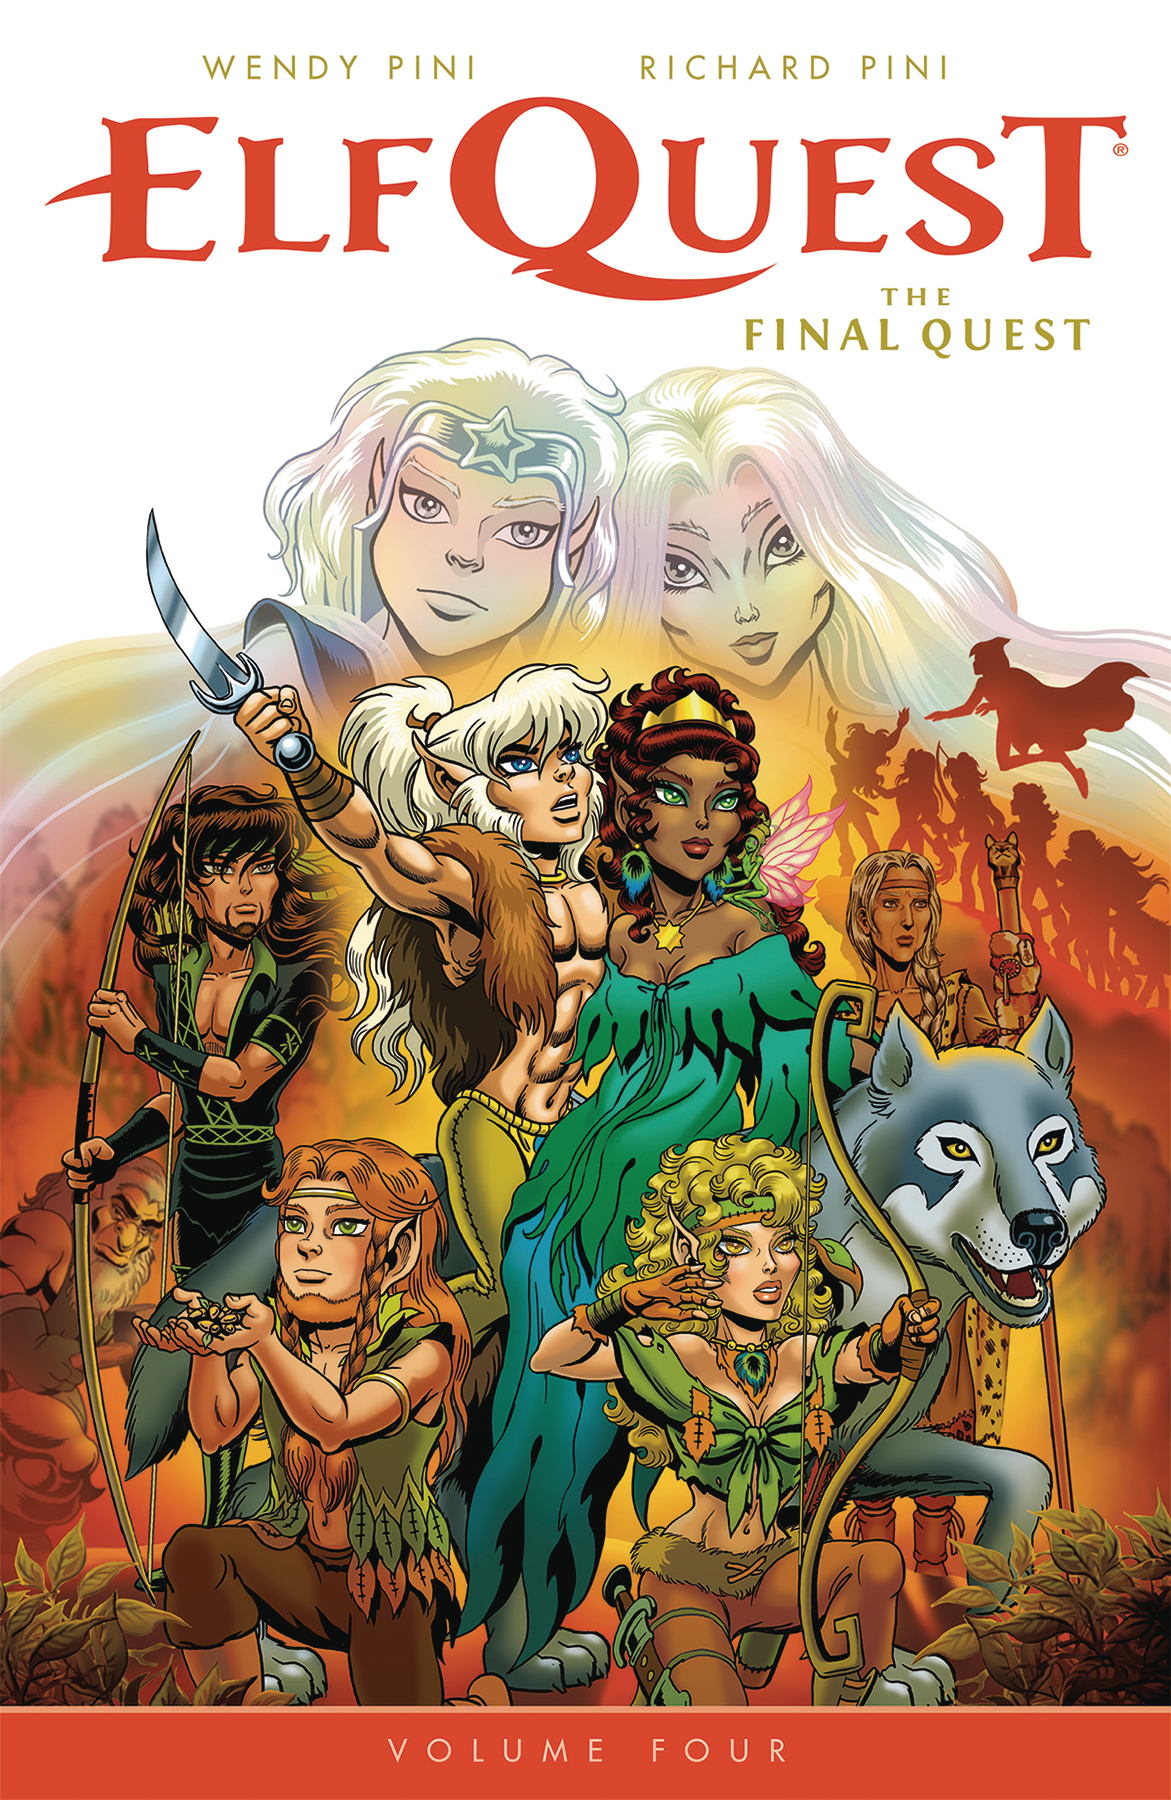 ELFQUEST FINAL QUEST TP VOL 04 (FEB180084)